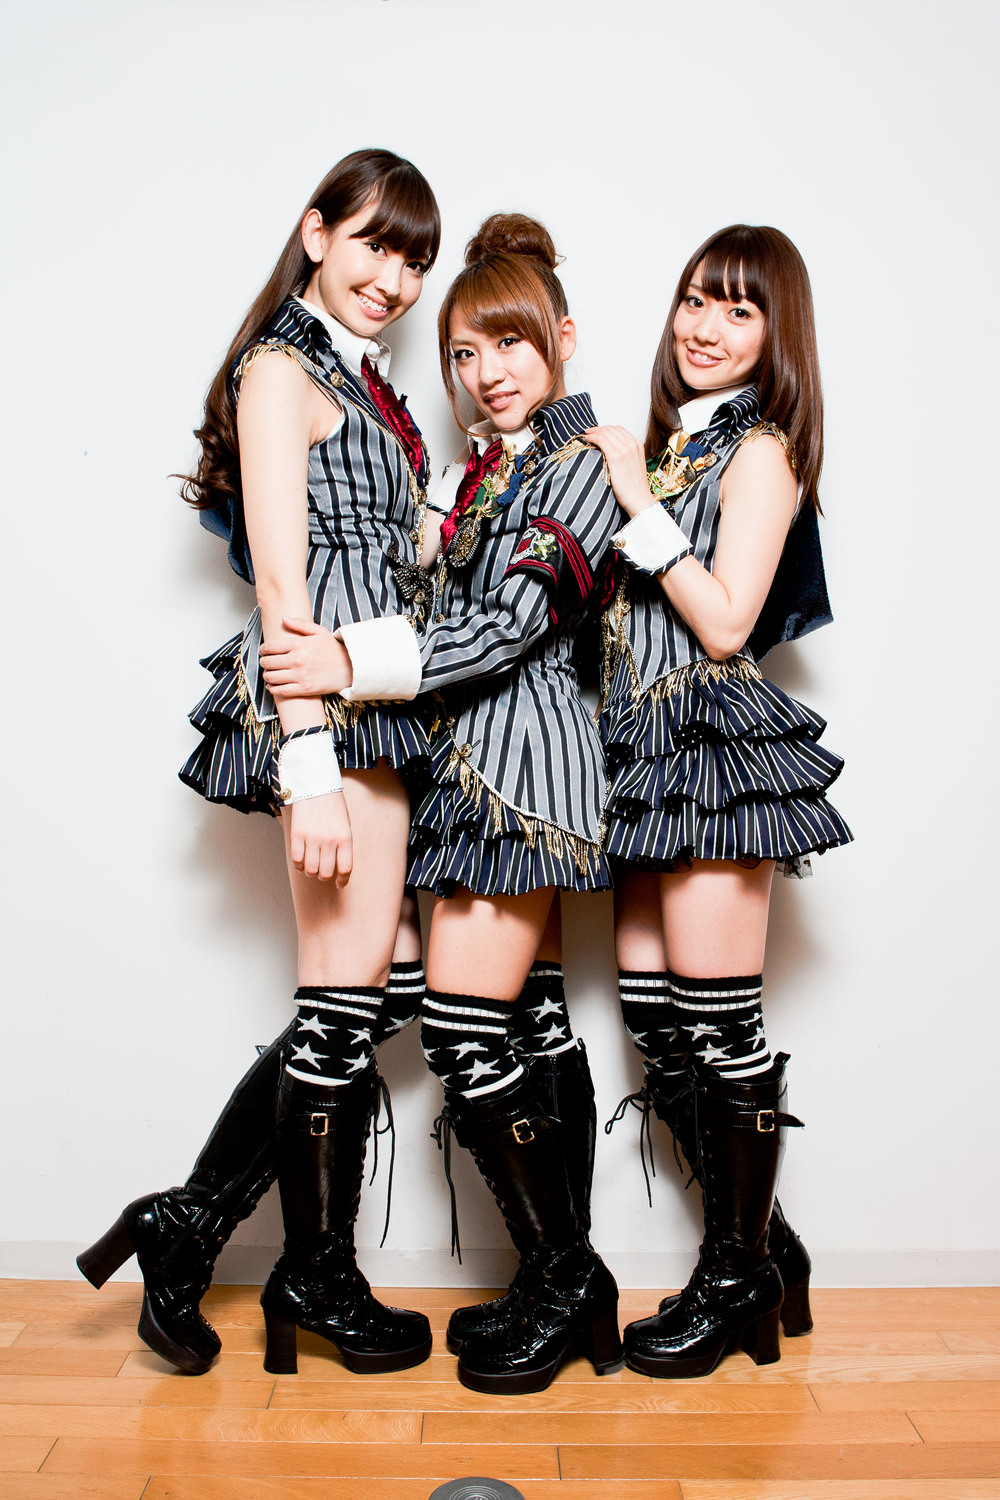 20110118_AKB48_Photo_shoot_MG_8903.jpg